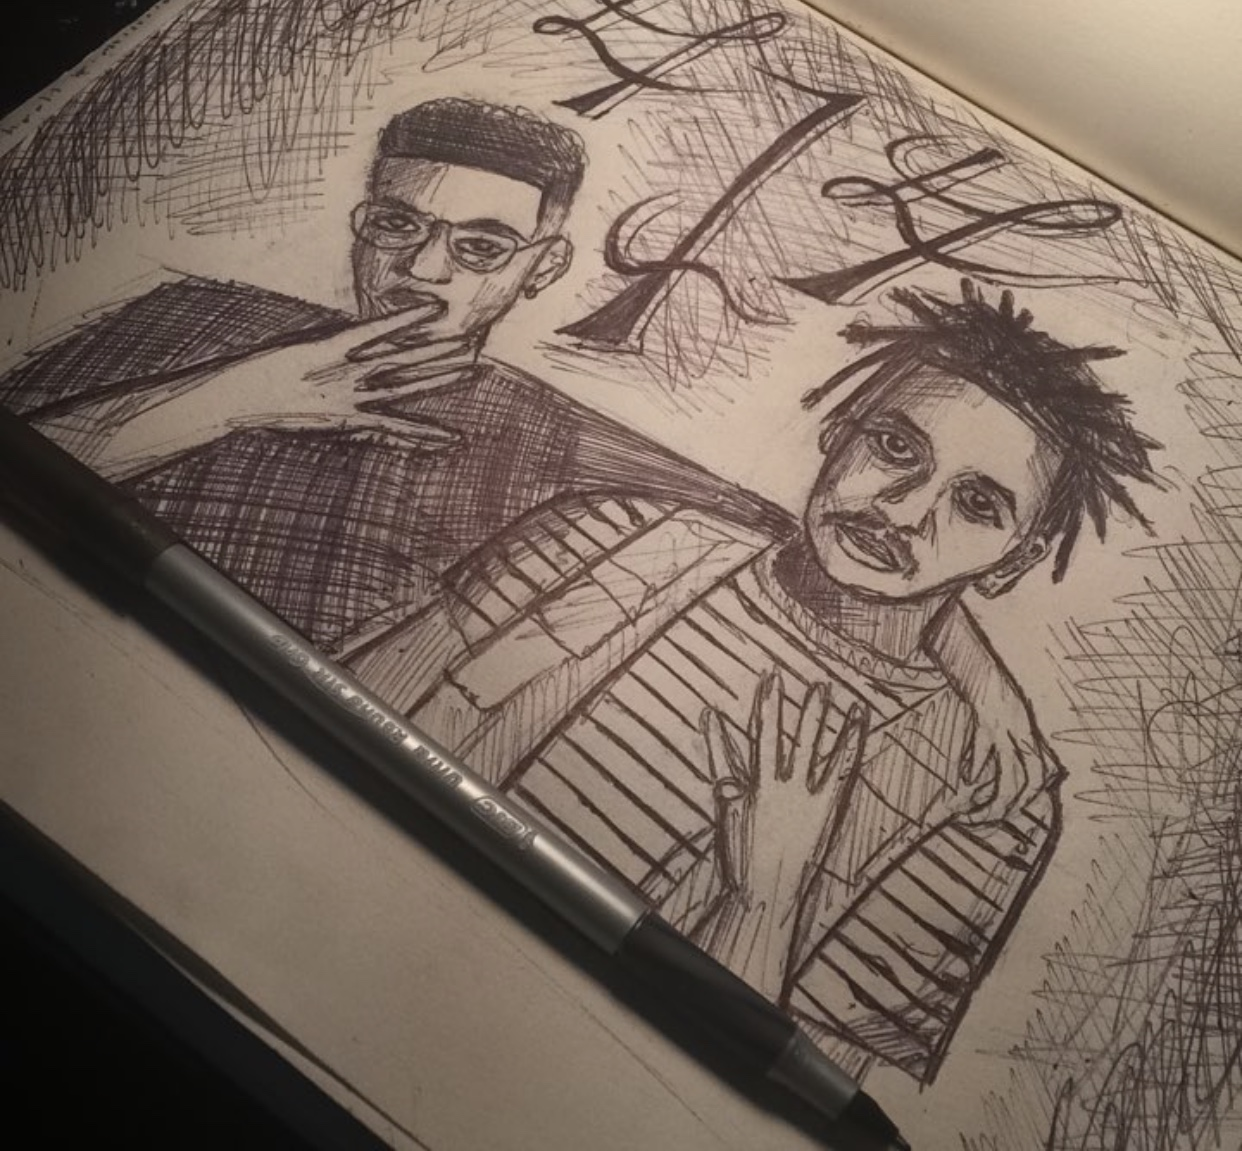 WebsterX & IshDARR -Jacob - What motivated me to draw this portrait of Webster X and IshDARR was to pay homage to two of the best artists of my city. Webster X's music always puts my in a very calm and creative mood and I love the instrumentation he uses to produce his music. When I met him at the summer solstice music festival he seemed like a very down to earth person who cared about his supporters and I wish for him to go far with his music and put Milwaukee on the map.IG: @5tryng